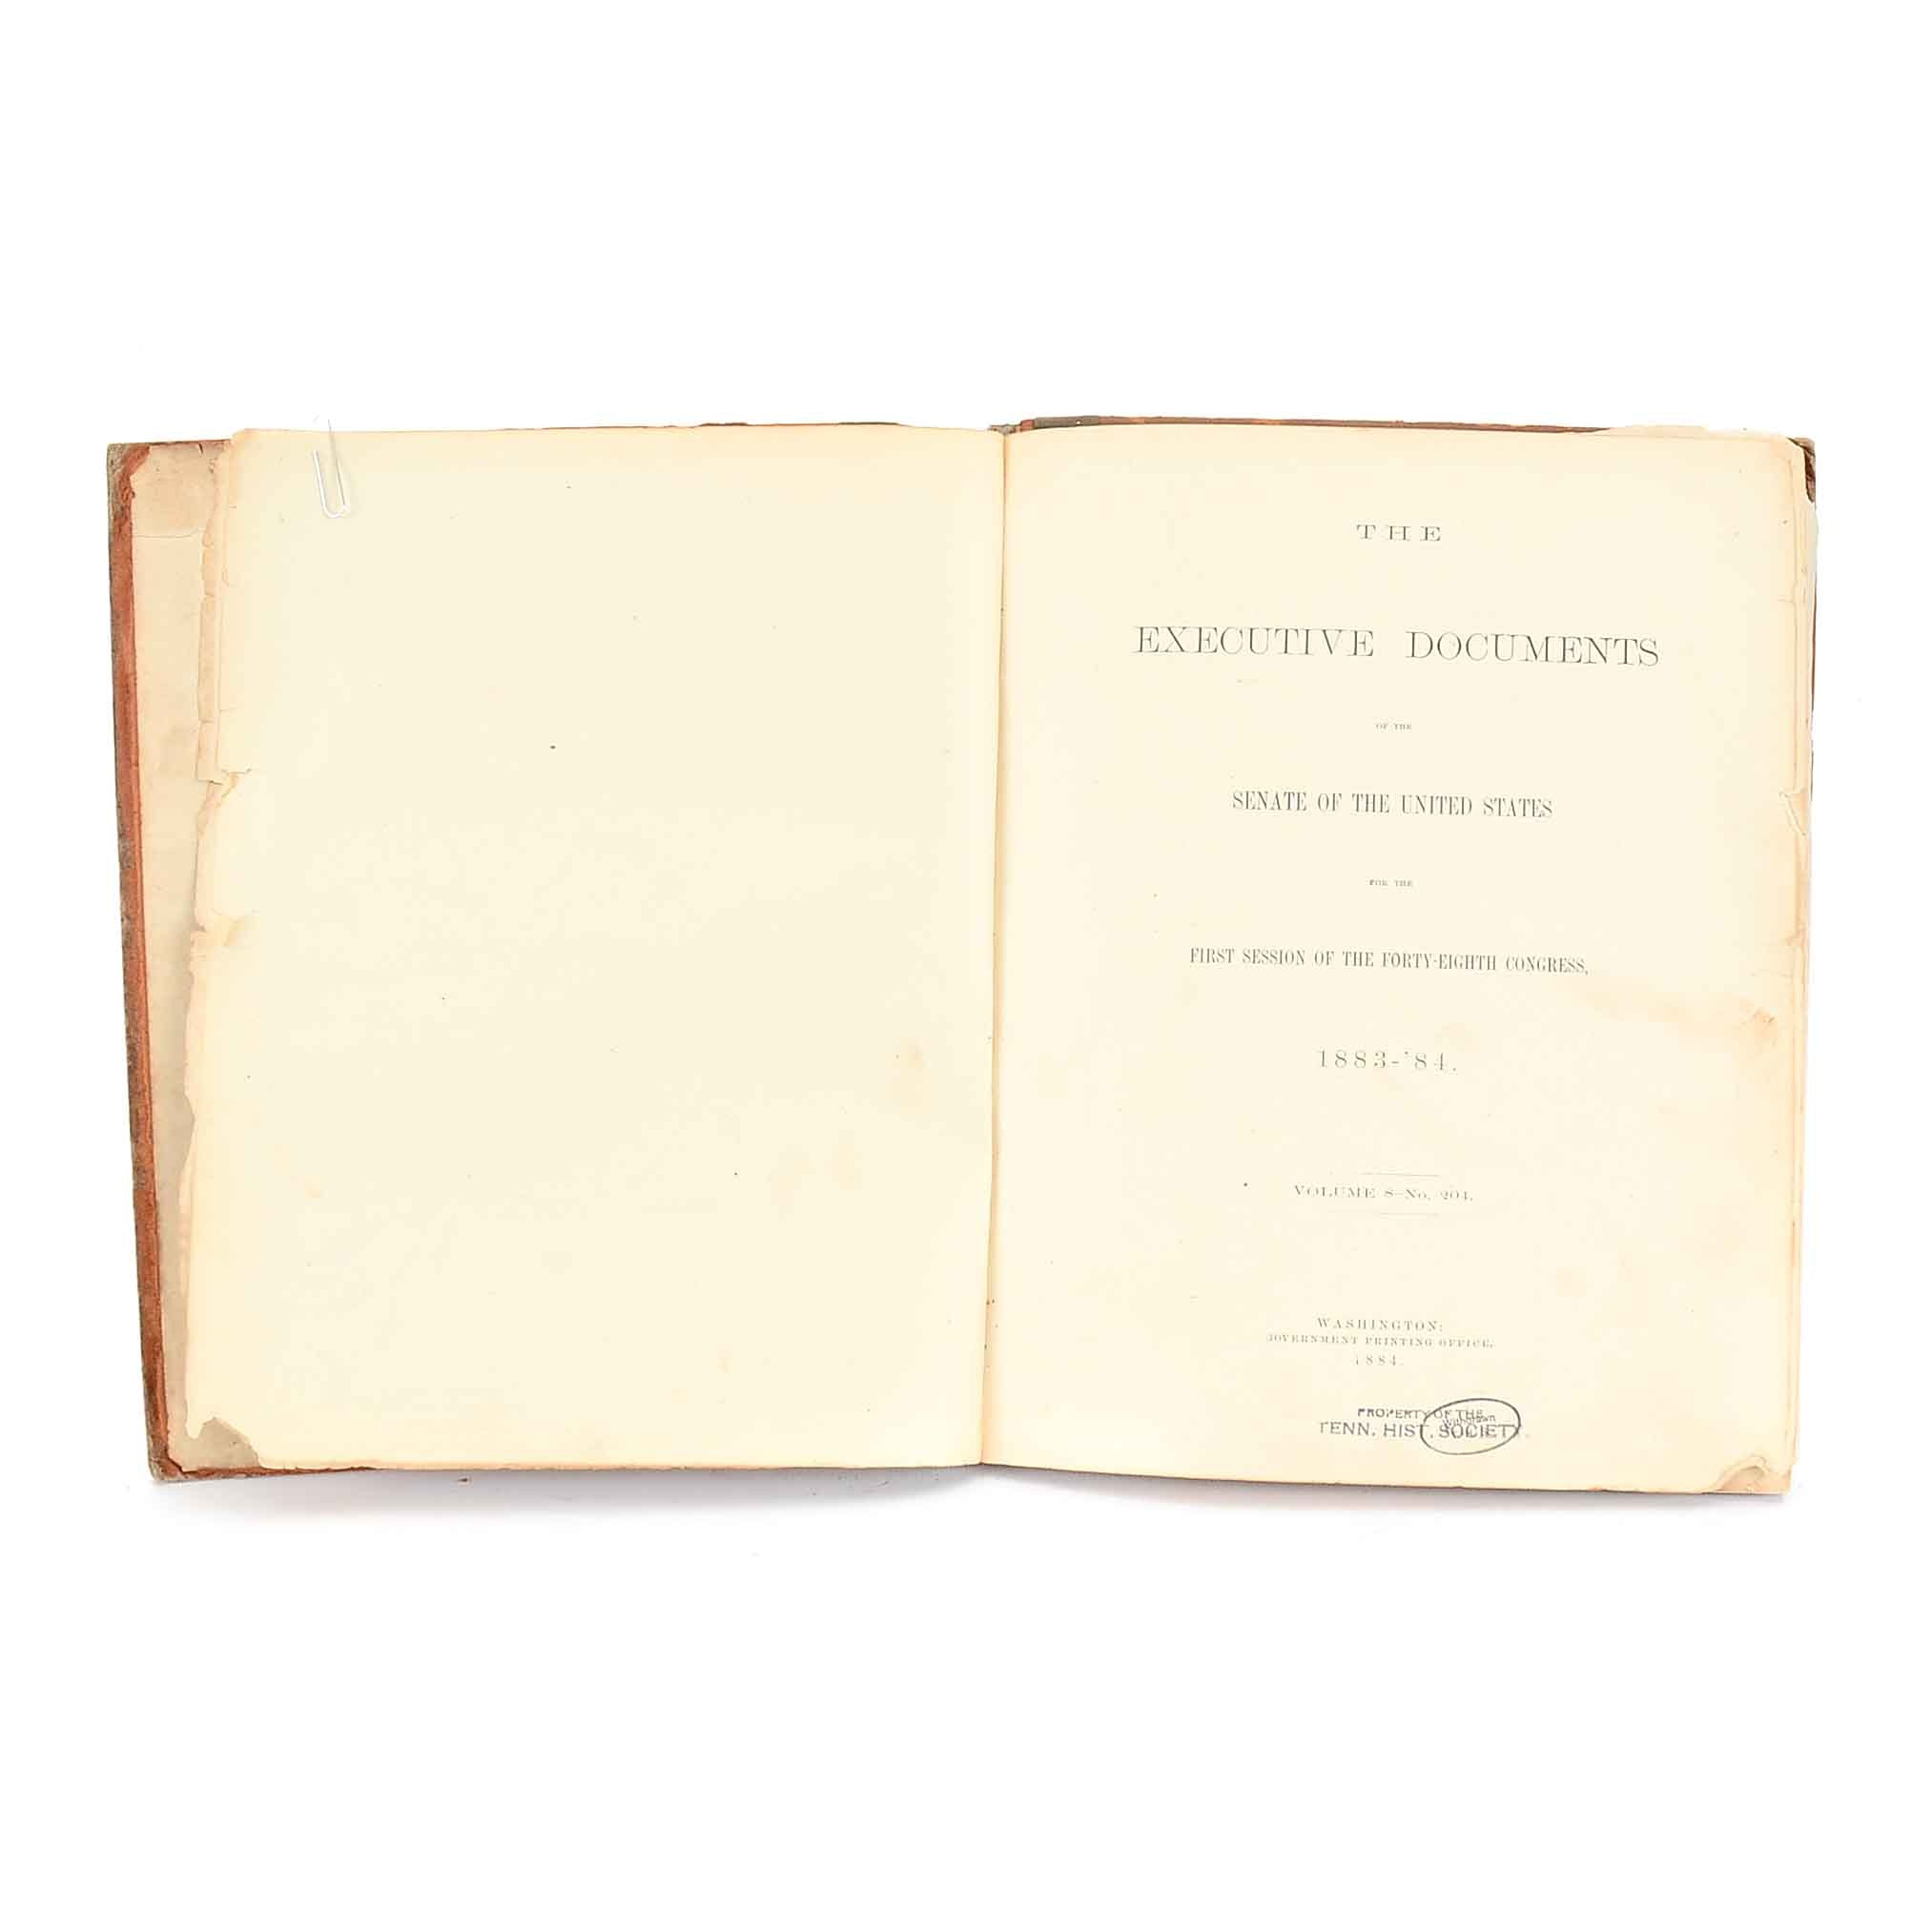 """1884 """"Report of the Cruise of the 'Thomas Corwin'"""" in Hardcover"""